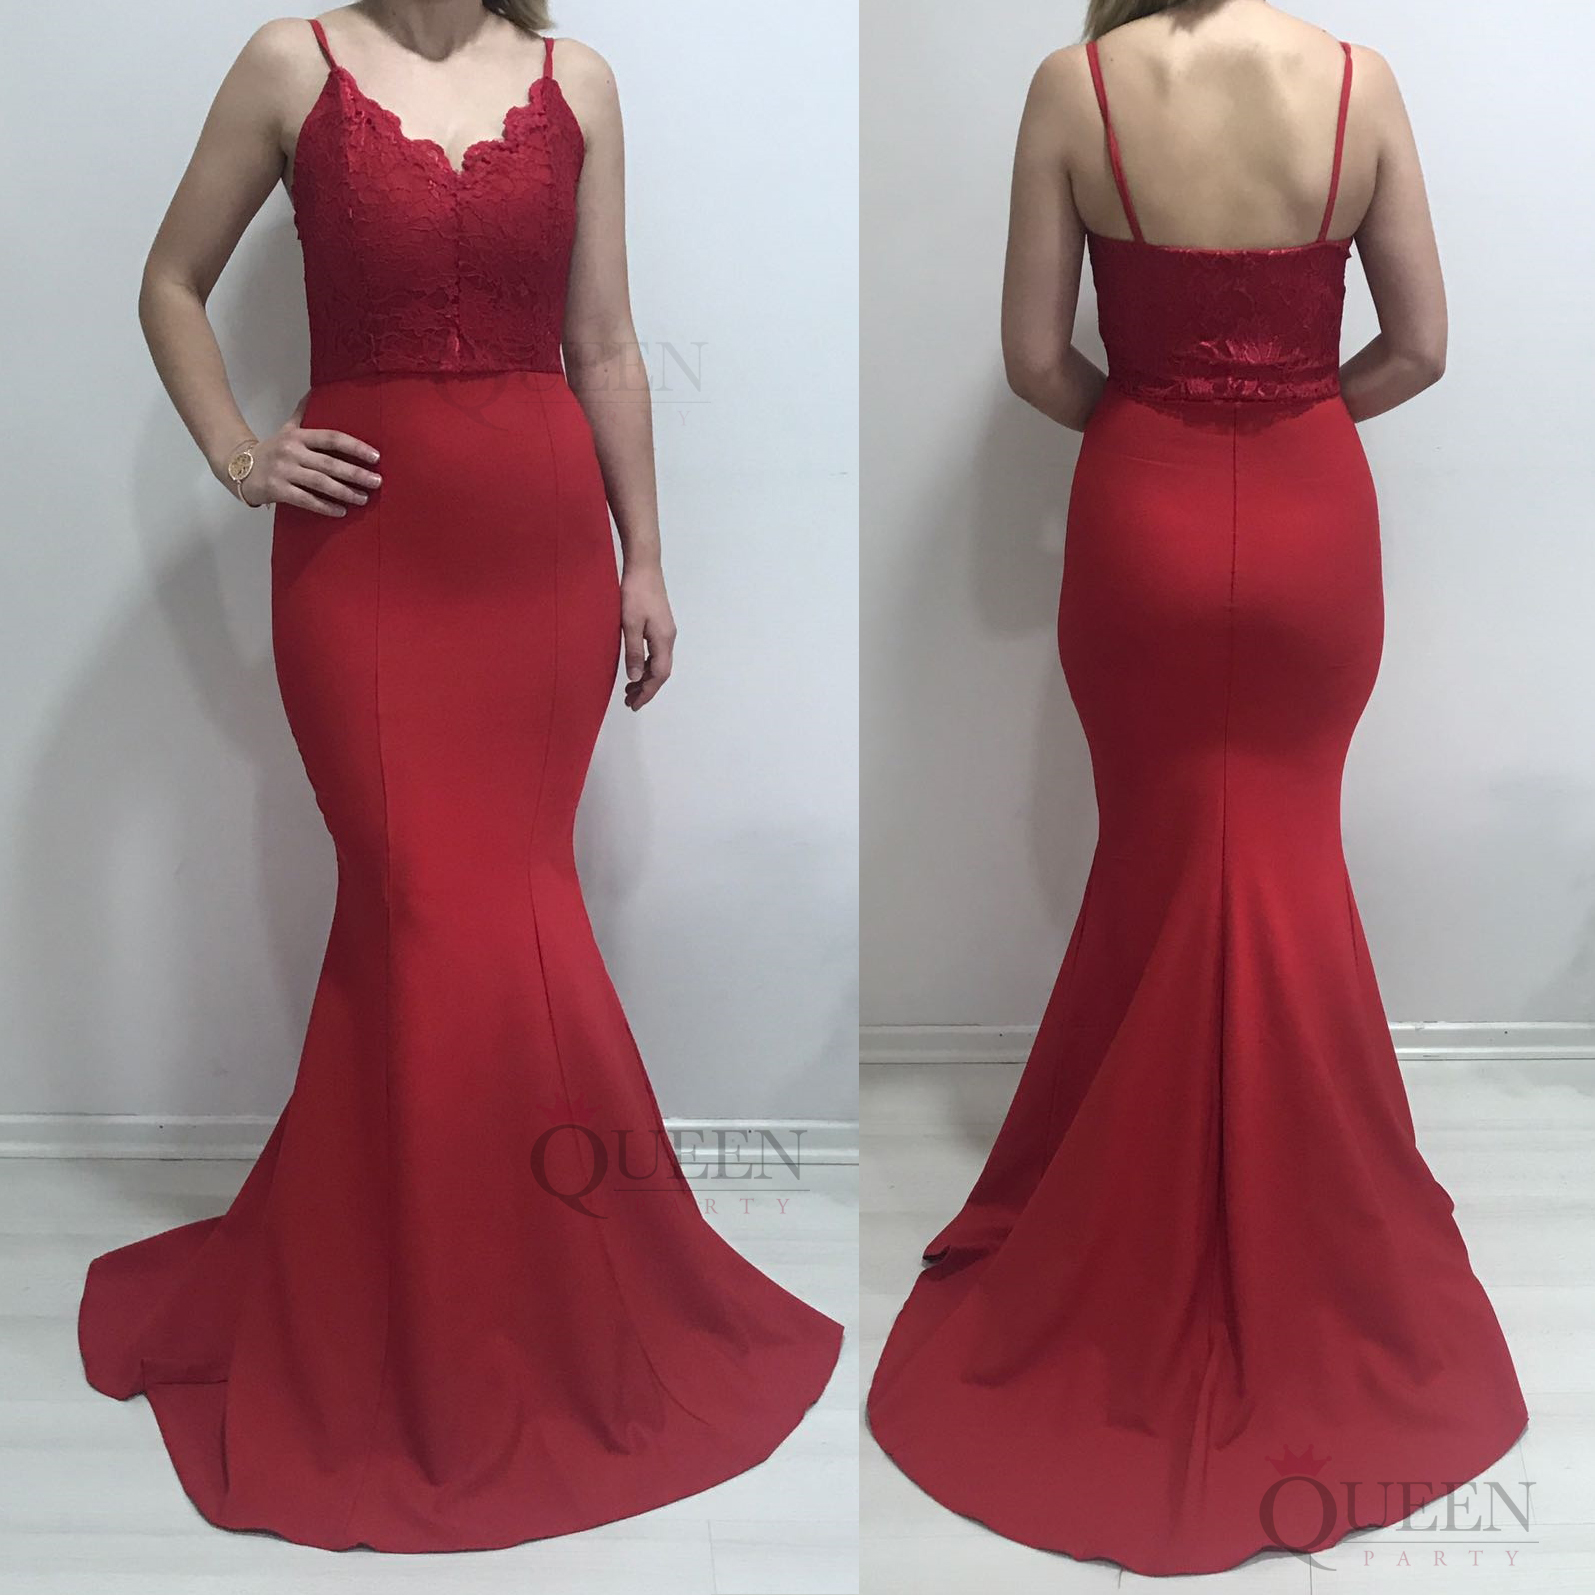 d5c64a08f39c8 Spaghetti Strap Red V Neck Sleeveless Lace Top Mermaid Satin Long Formal  Dress With Zipper